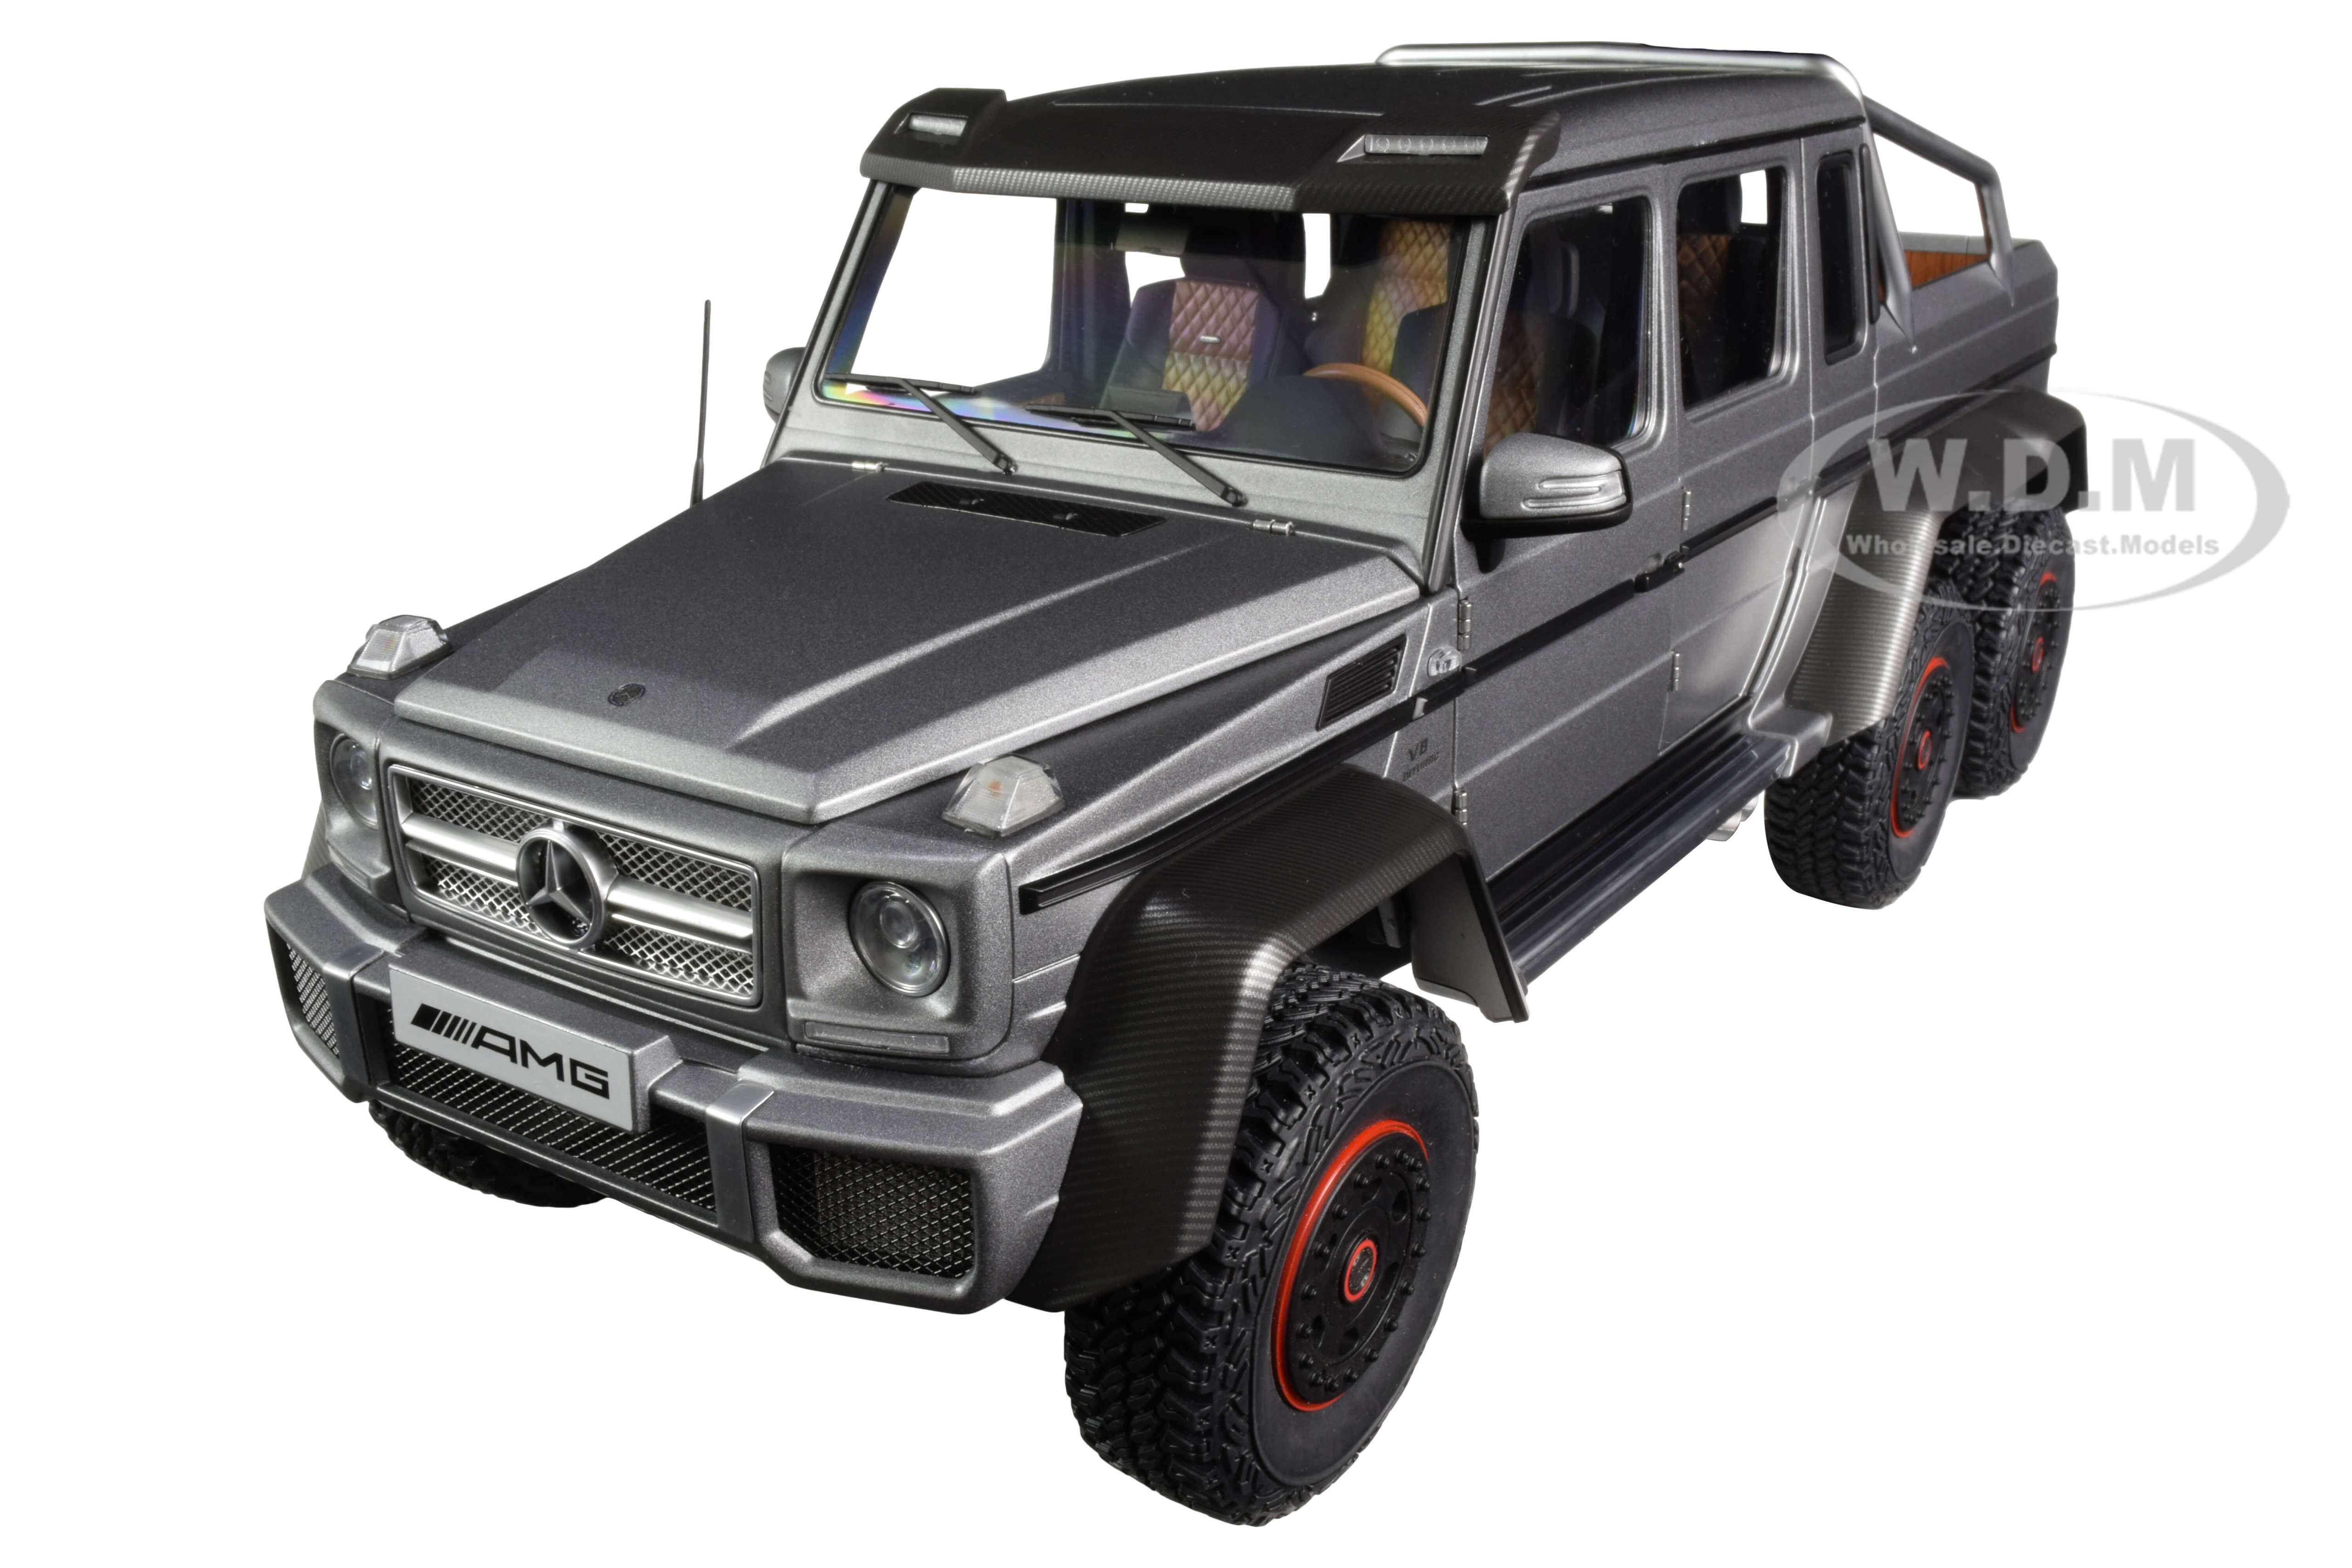 Mercedes Benz G63 AMG 6x6 Designo Platinum Magno Gray Metallic with Carbon Accents 1/18 Model Car by Autoart